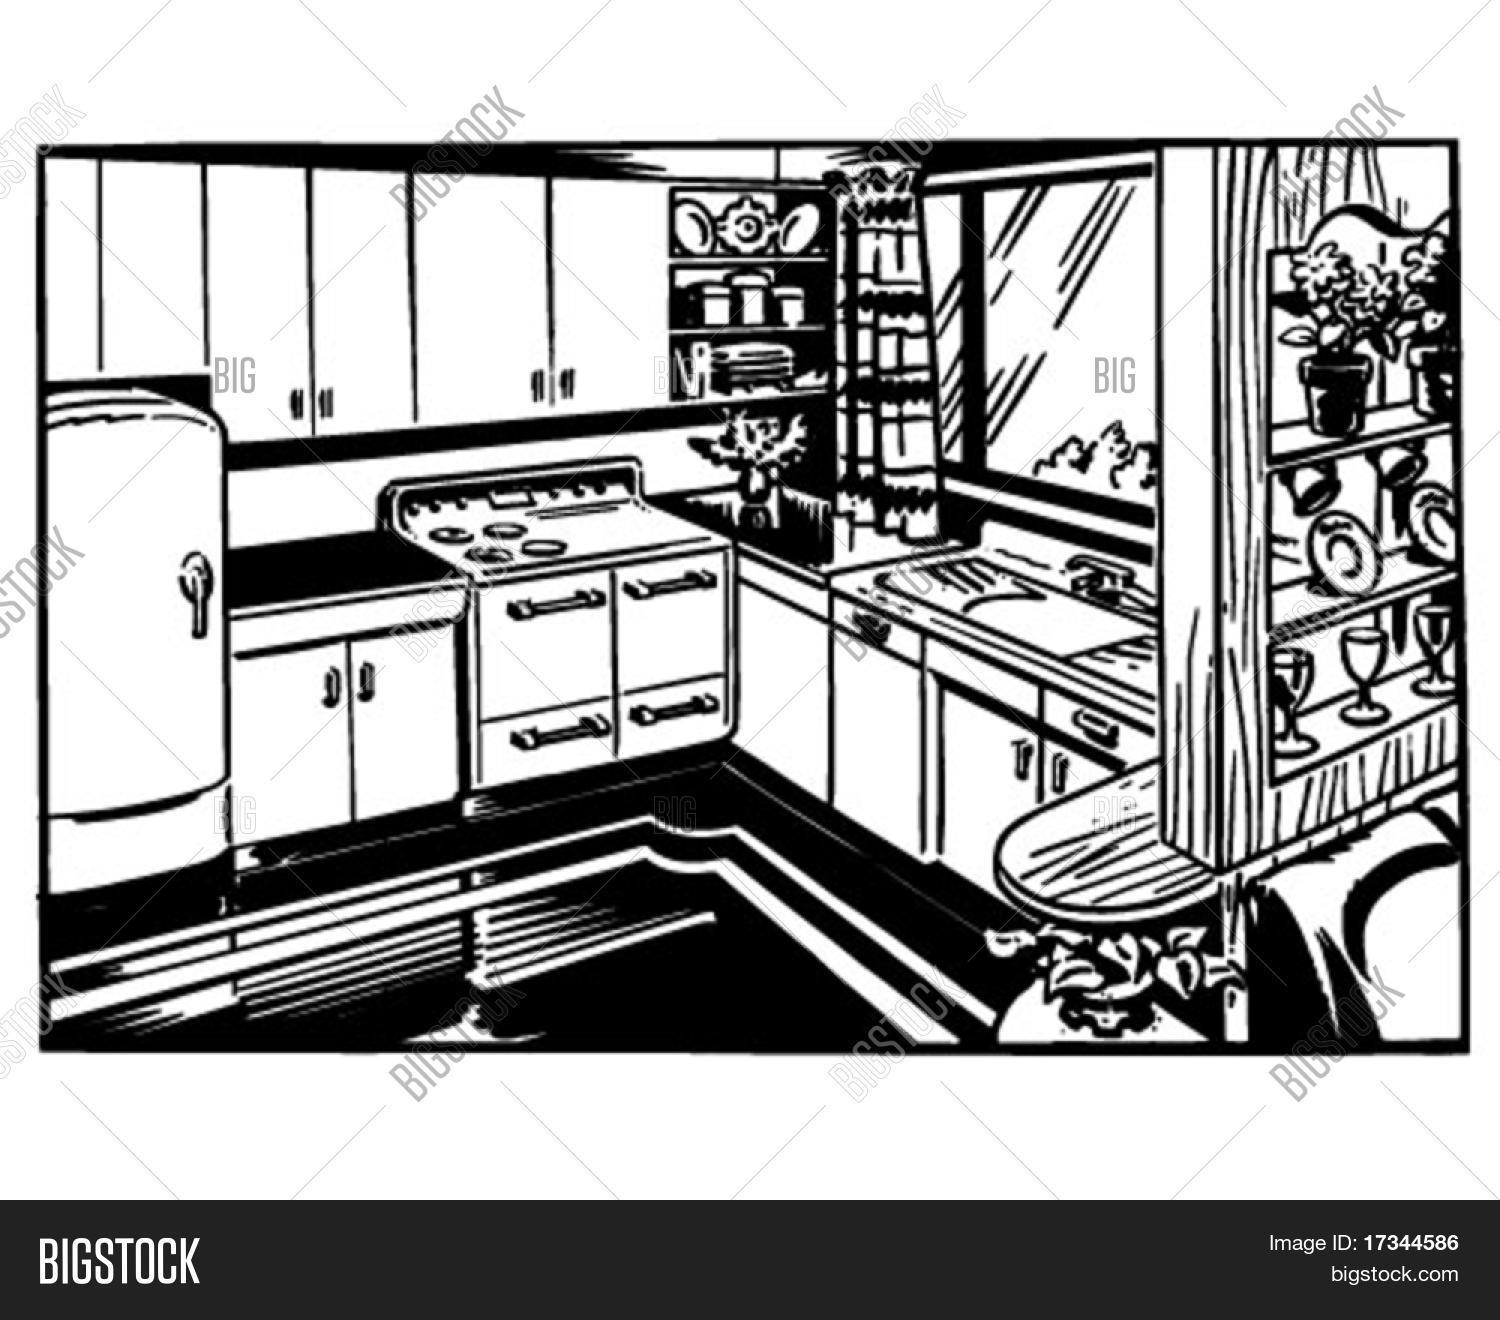 Kitchen Window Clip Art: Retro Kitchen - Clip Art Vector & Photo